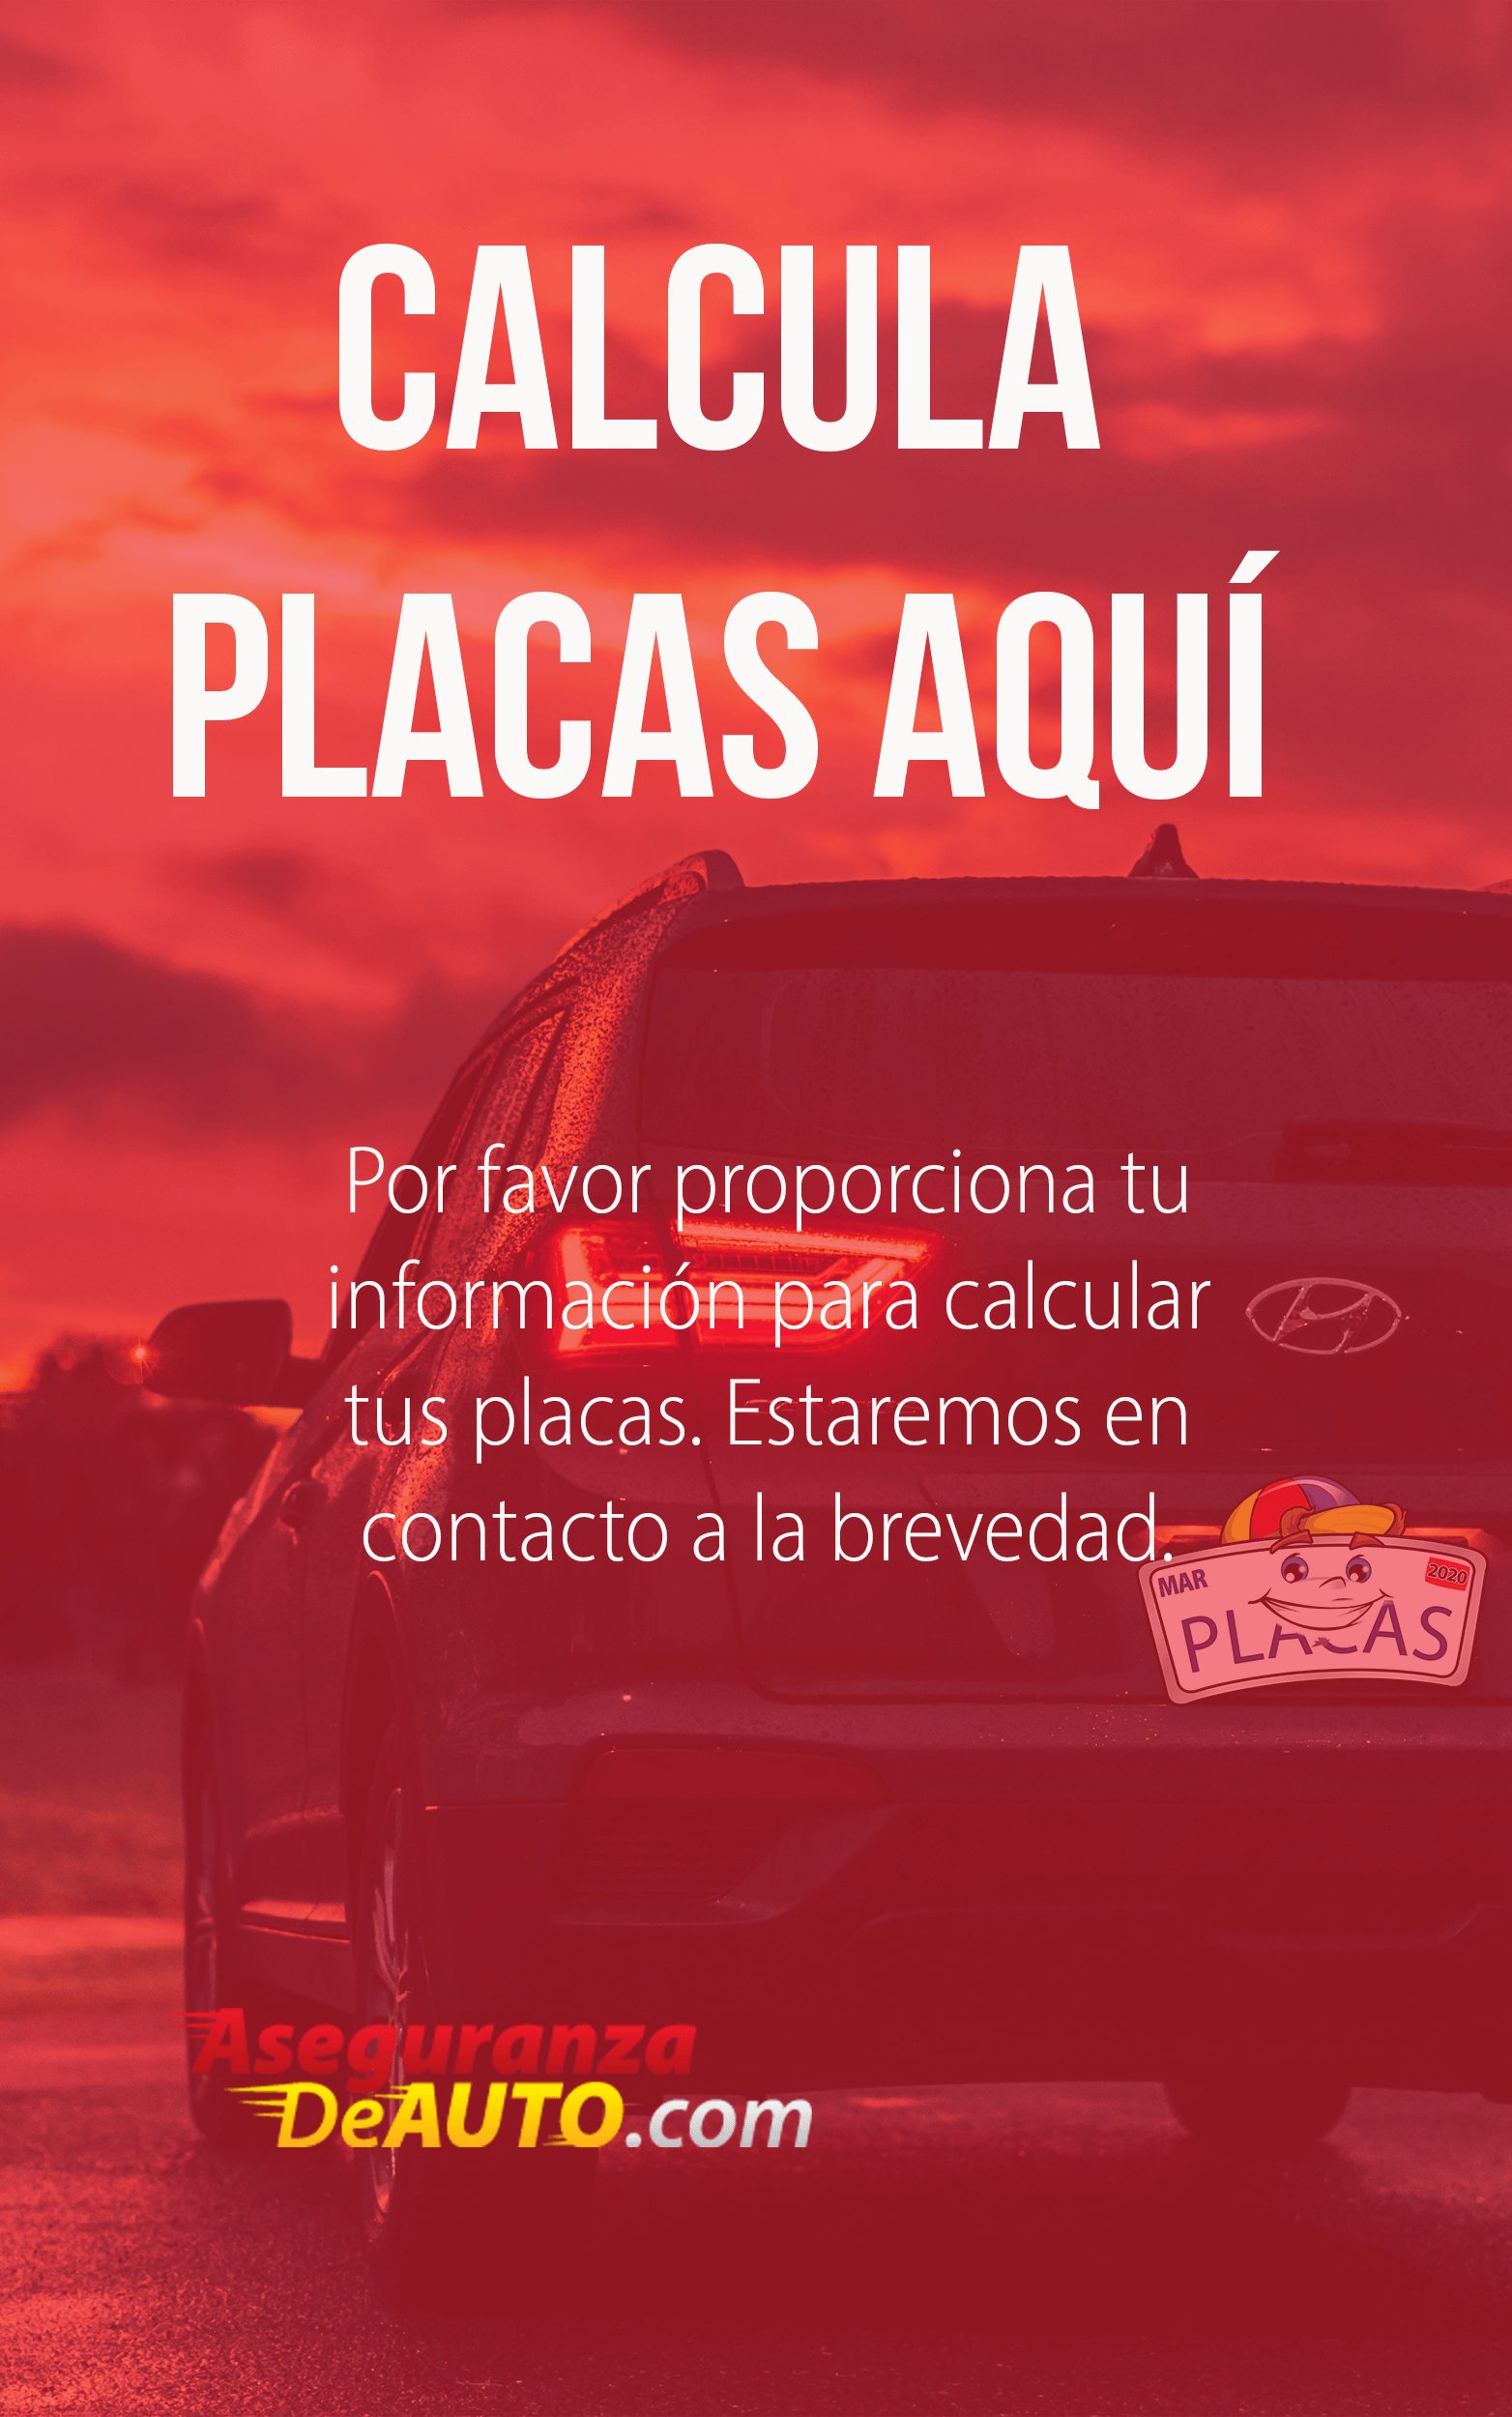 pago de placas pago de sticker pago de tags tags renewal registration renewal dmv registration